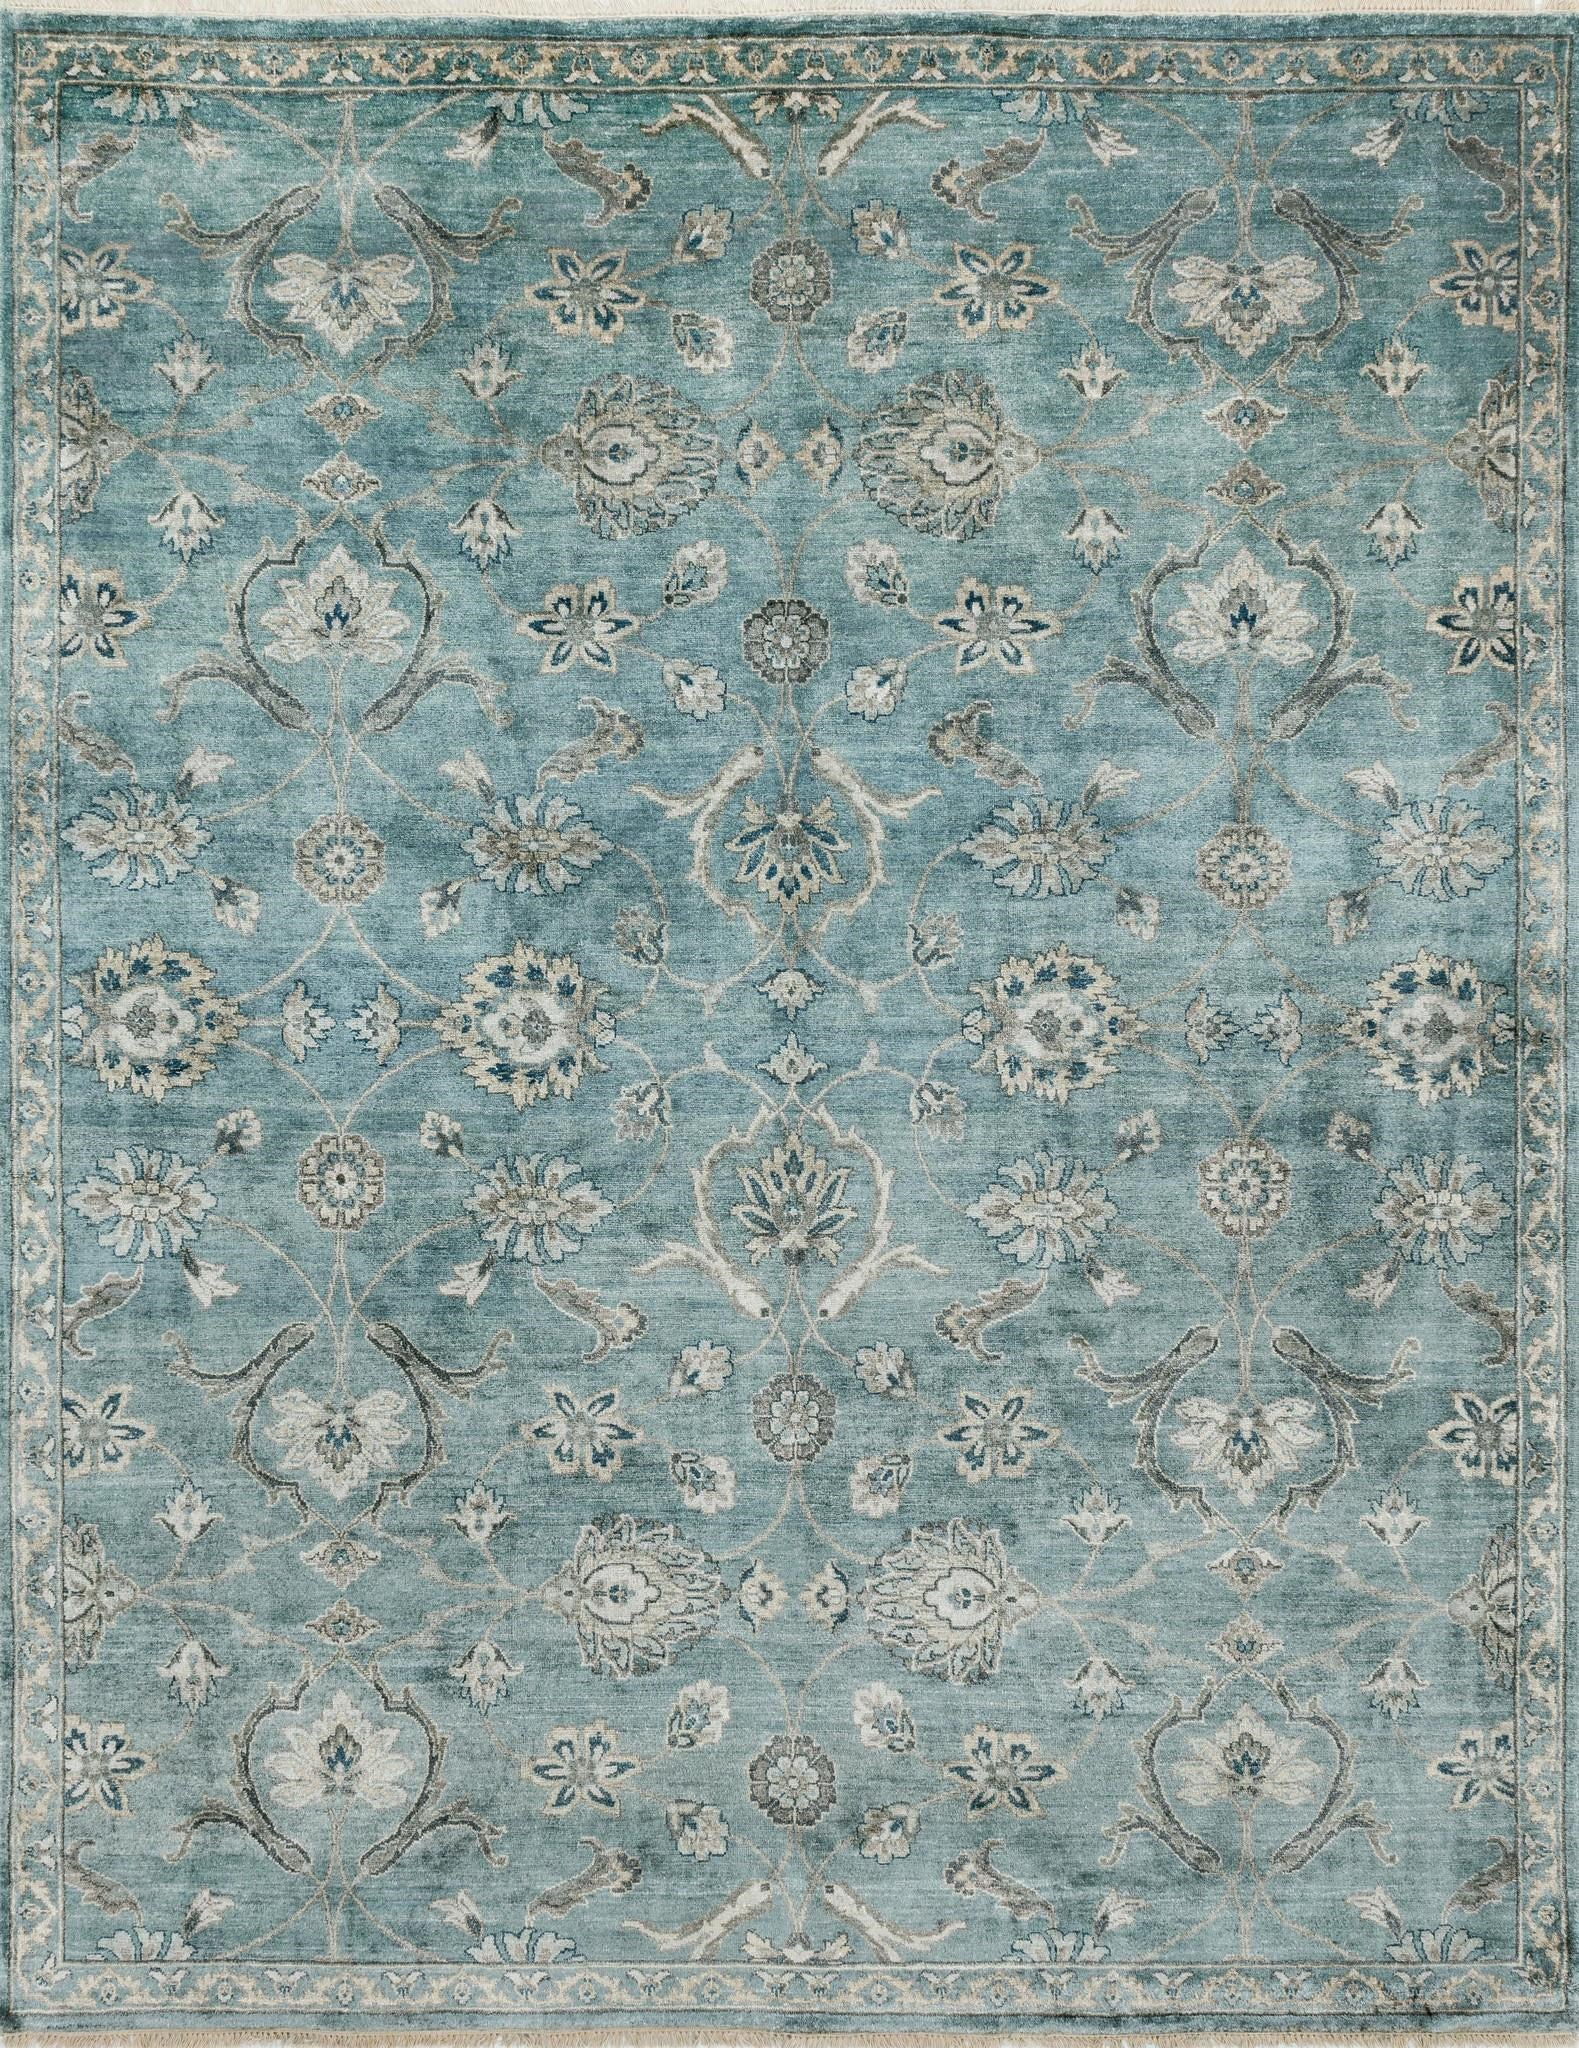 Loloi Kensington KG-01 Blue/Fog Area Rug by Henrietta Spencer-Churchill main image